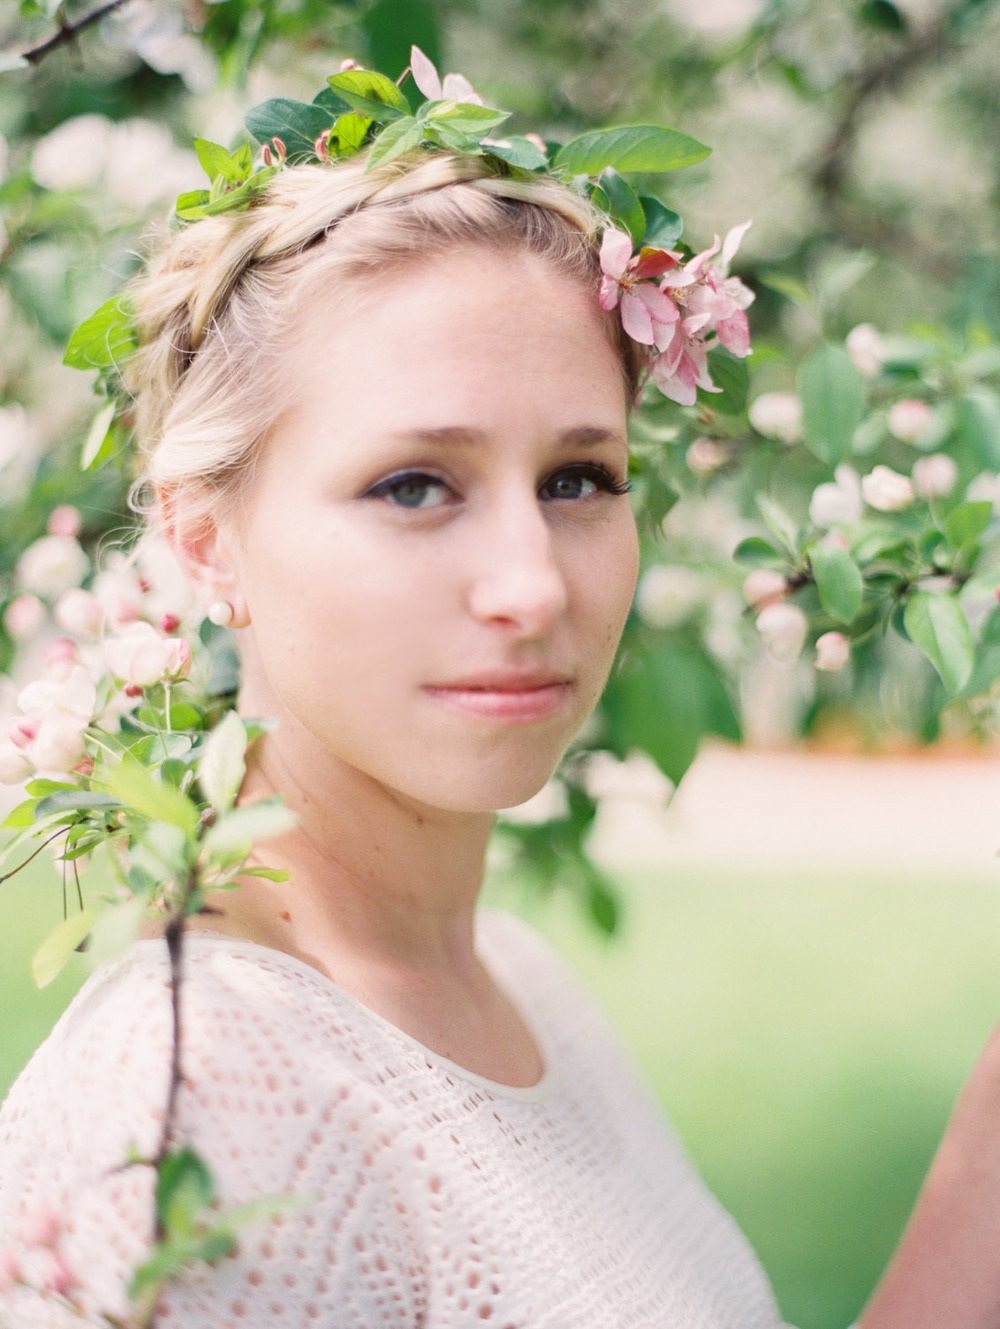 kateweinsteinphoto_molly_cherryblossoms5.jpg